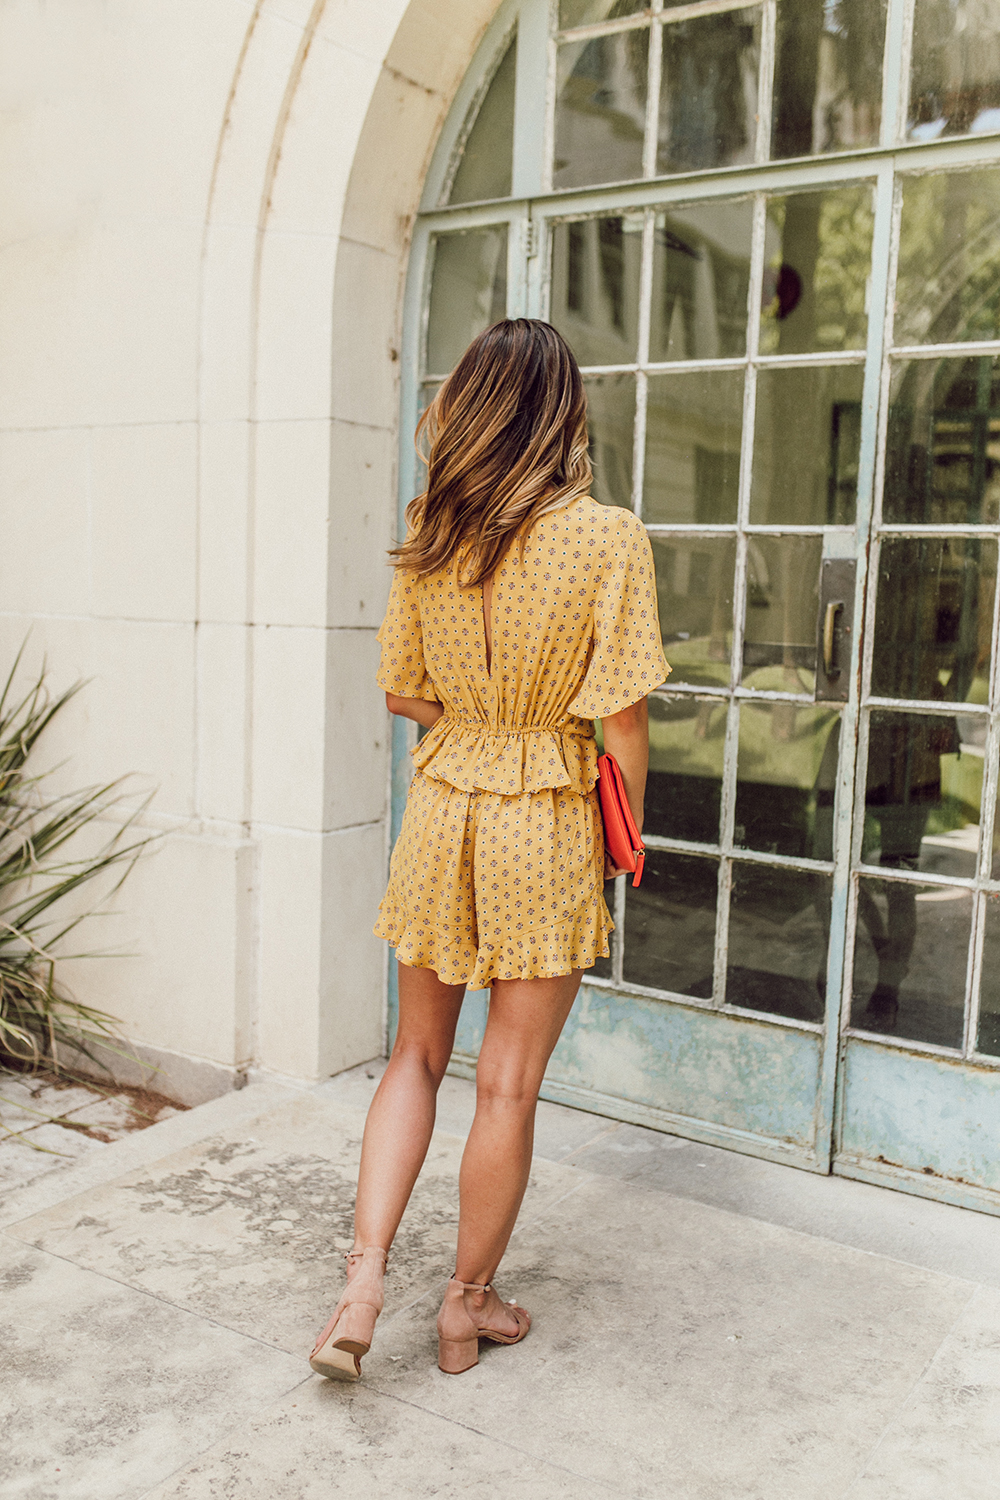 livvyland-blog-olivia-watson-austin-texas-fashion-lifestyle-blogger-river-island-floral-print-yellow-knot-front-romper-summer-occasion-outfit-idea-7